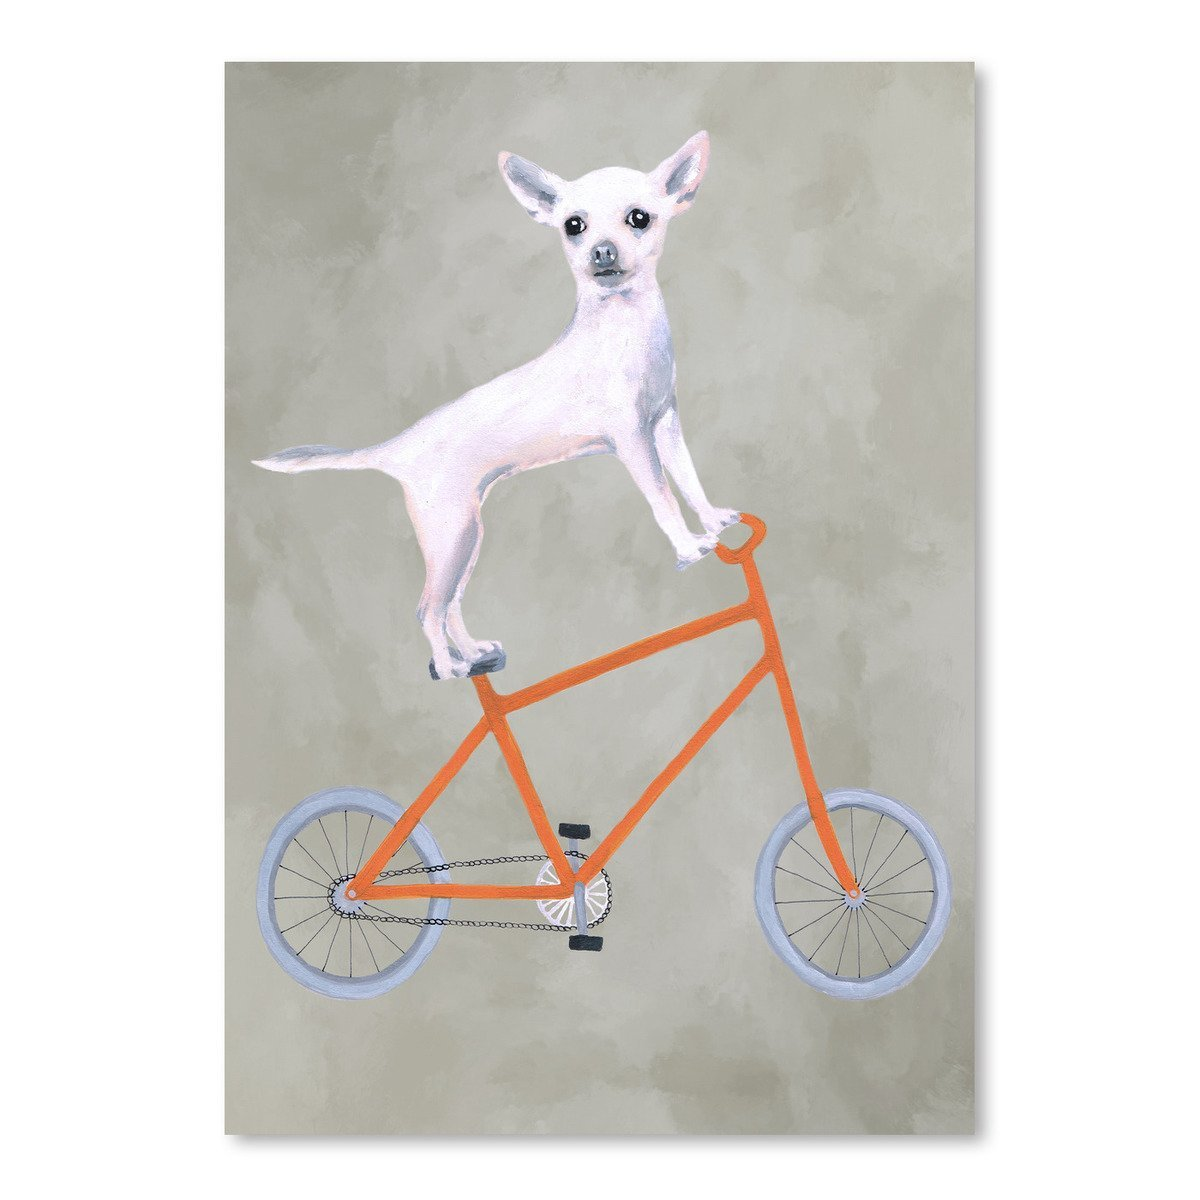 Chihuahua On Bicycle by Coco de Paris - Art Print - Americanflat